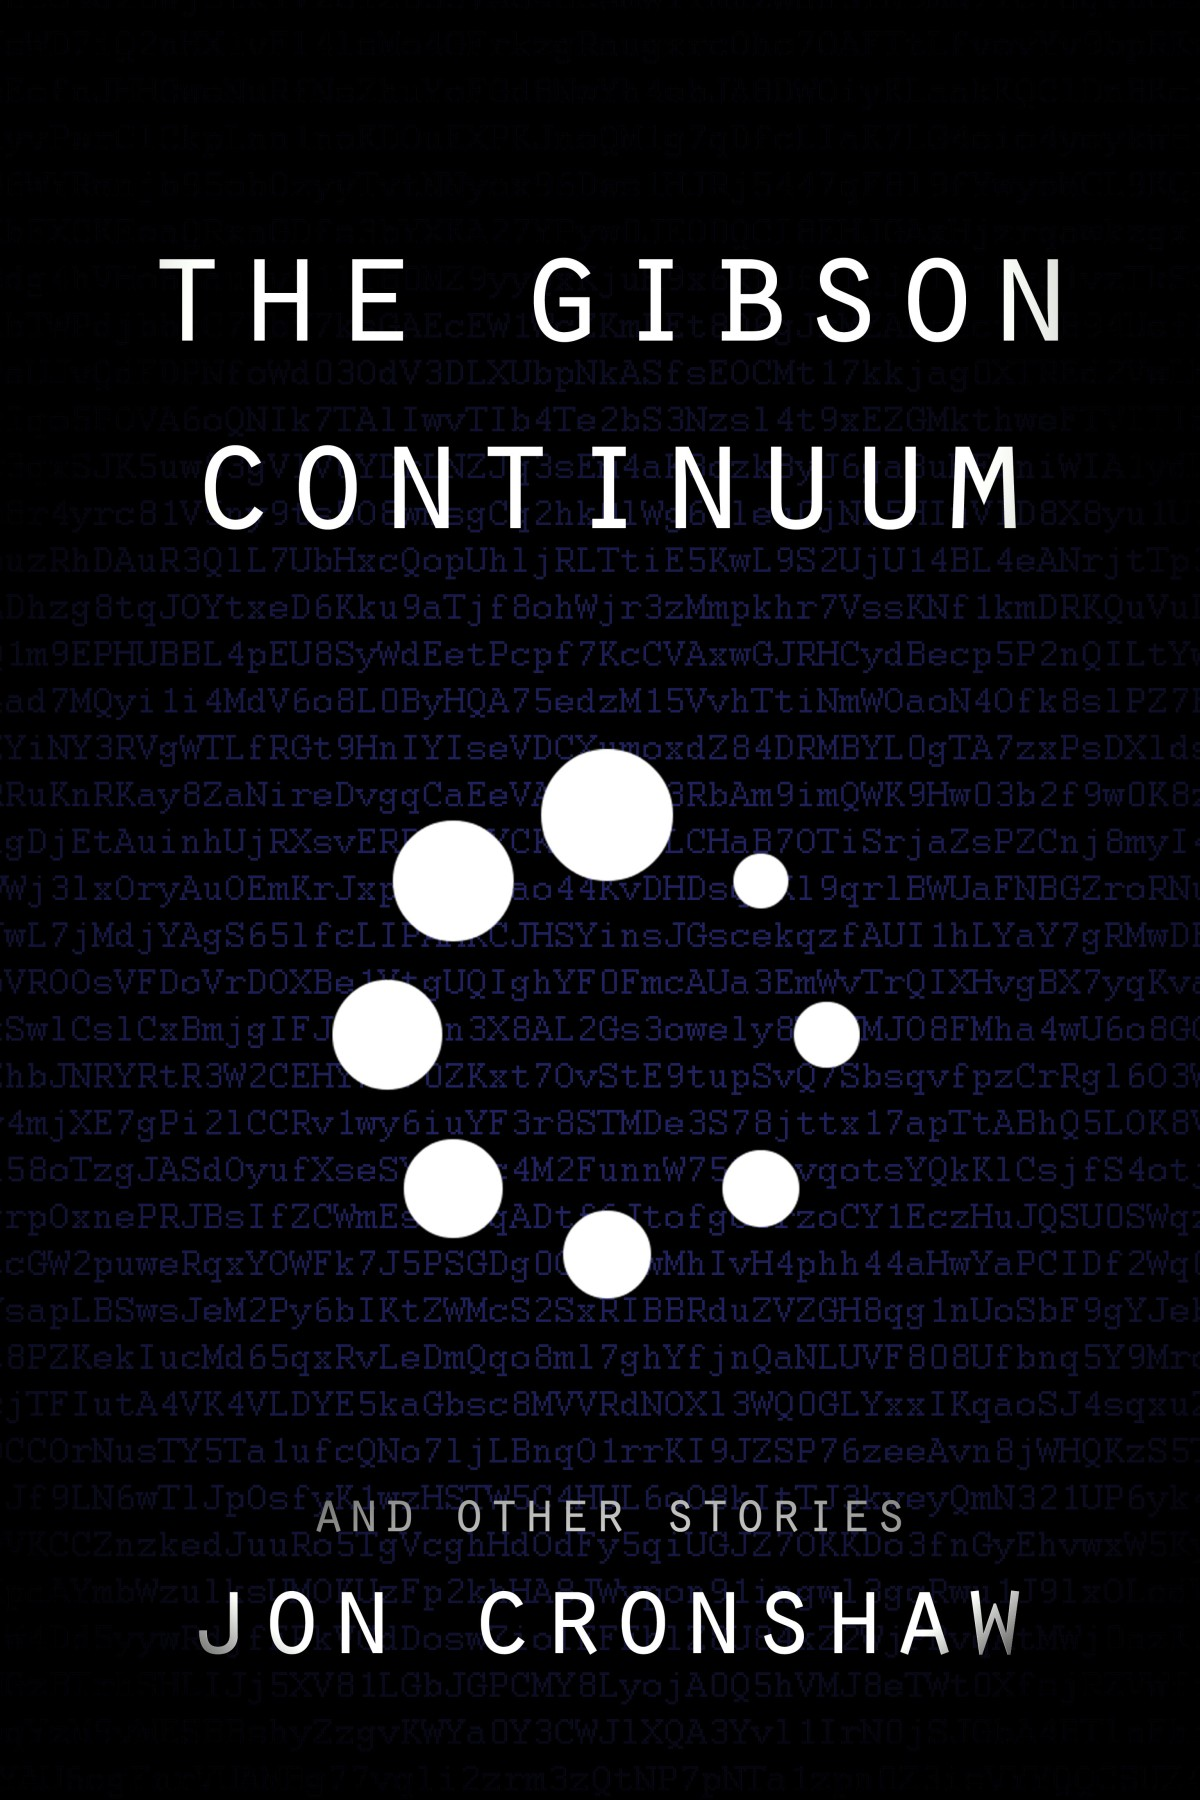 Announcing: The Gibson Continuum and Other Stories